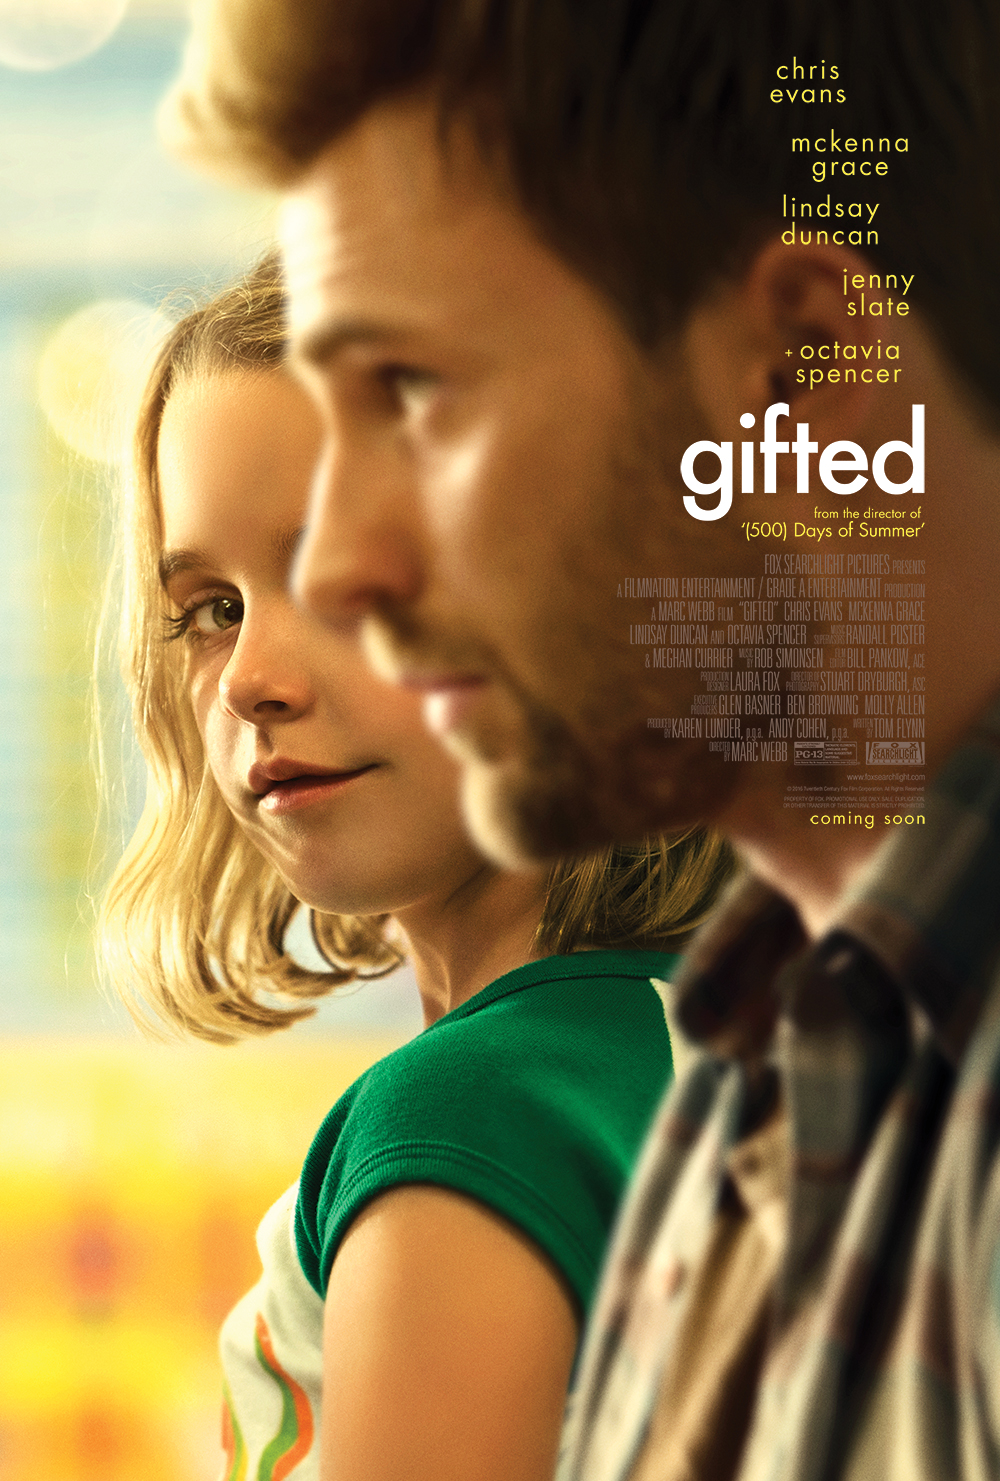 Gifted - Apr 21, 2017